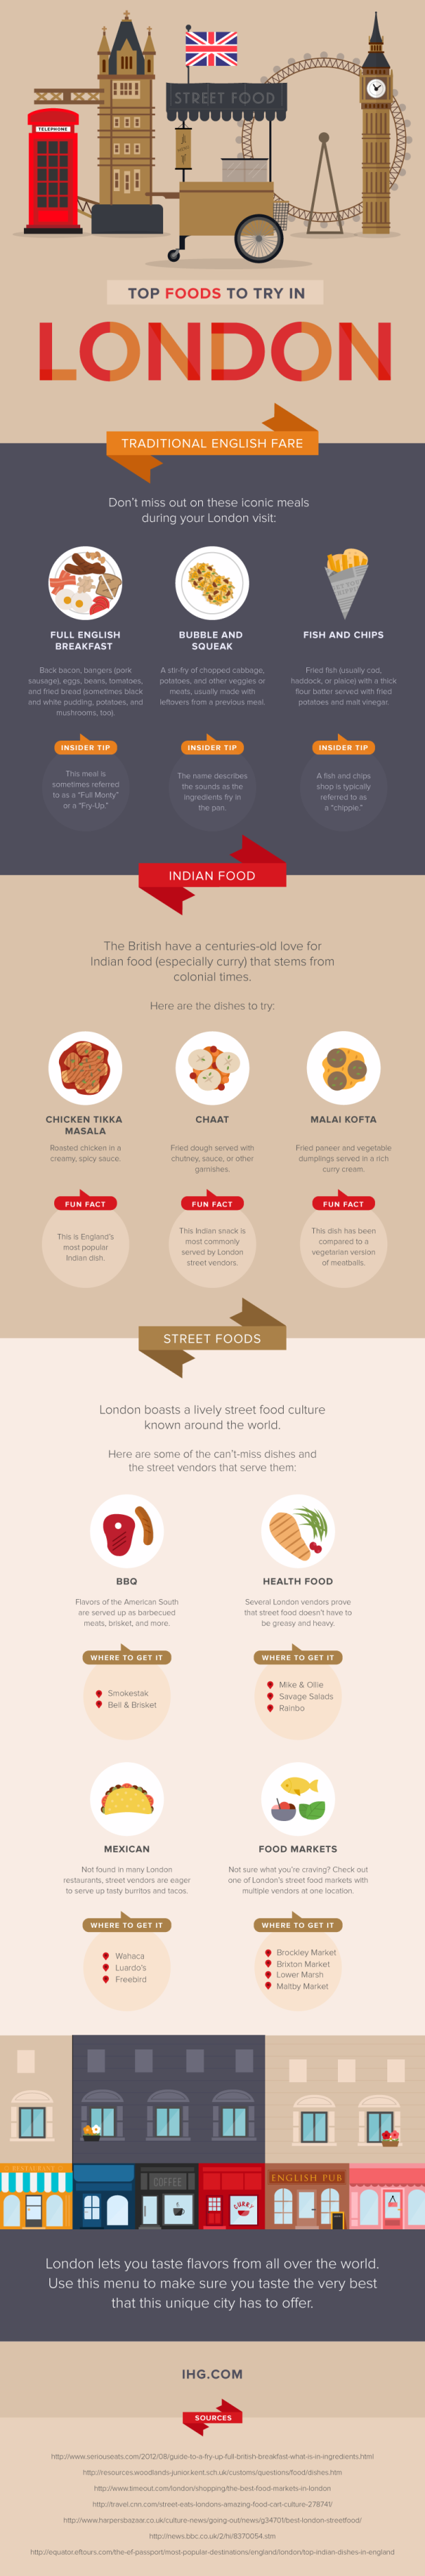 Top foods to try in London infographic